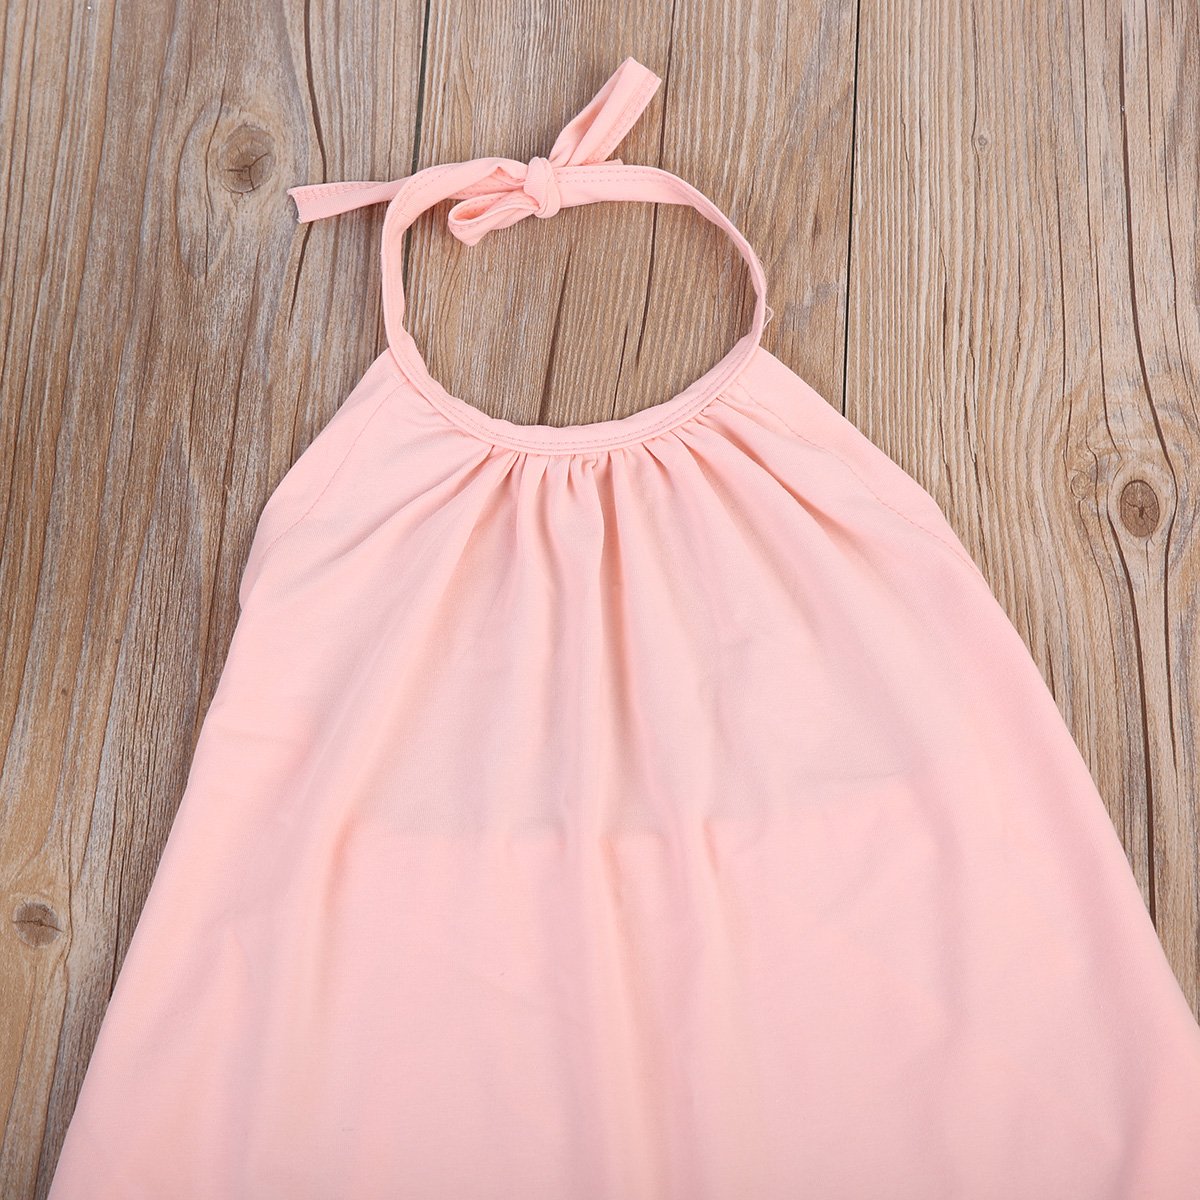 2017-Summer-Kids-Baby-Girls-Strap-Cotton-Romper-Jumpsuit-Harem-Trousers-Summer-Clothes-5